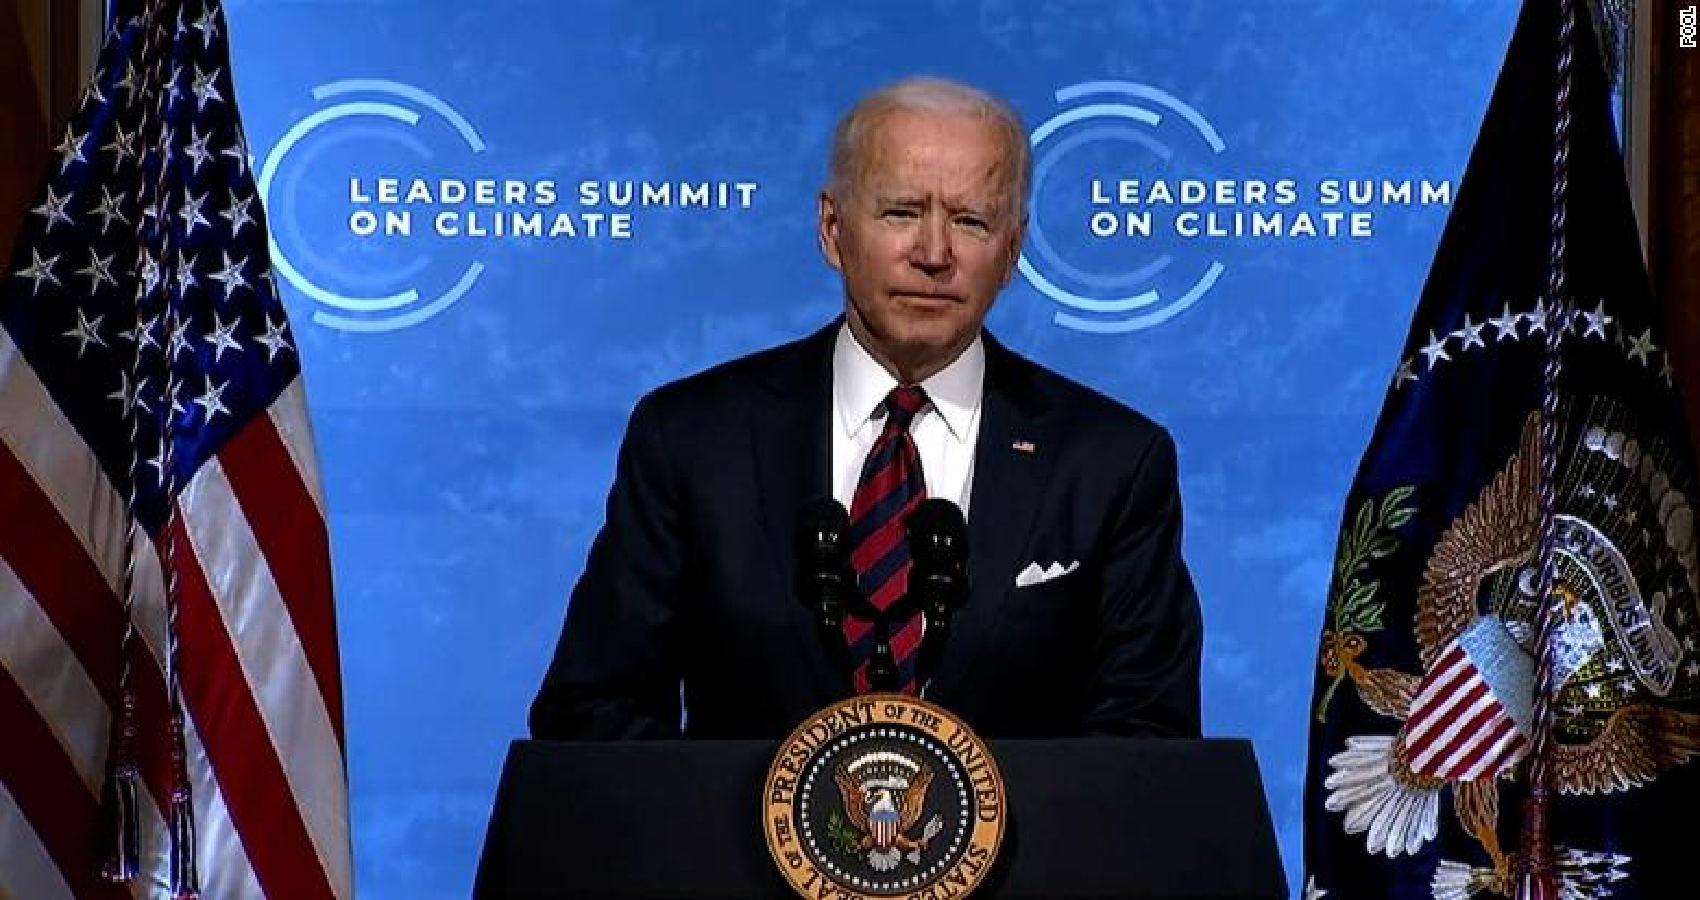 For Biden's Climate Summit To Make Progress, There Is Need to Involve the World